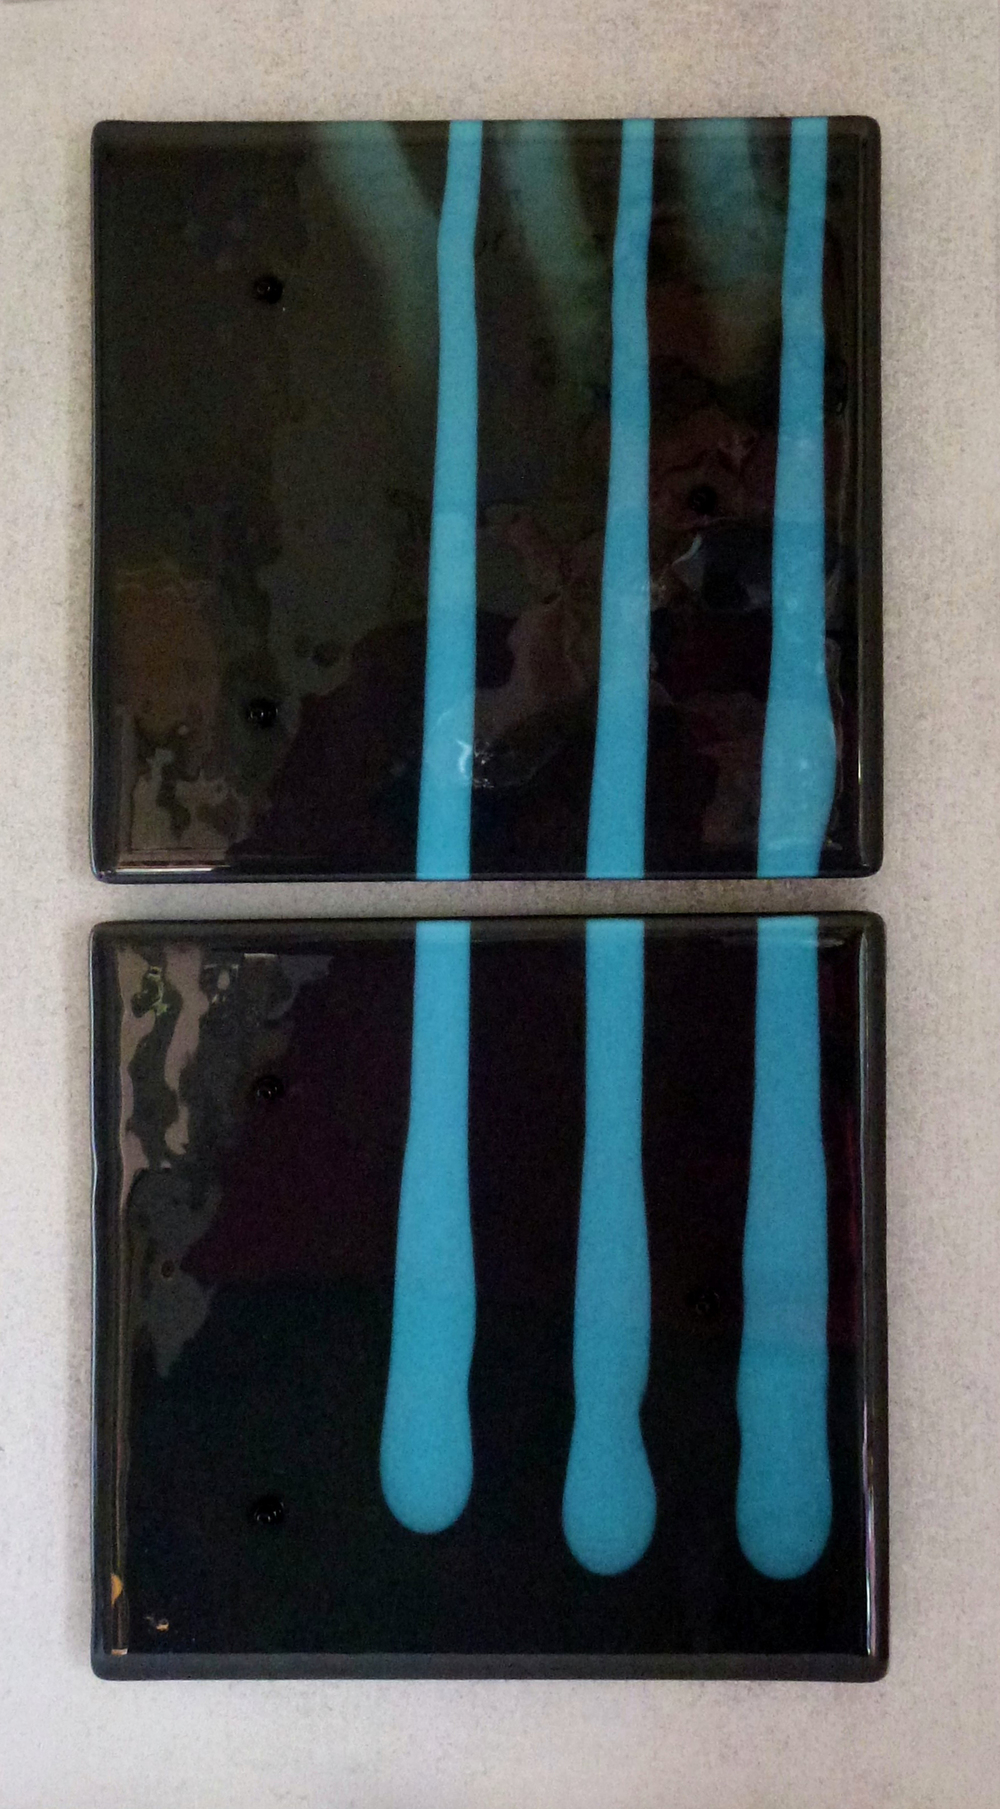 Interrupted – Kiln Fused Glass by Jeanette Cook